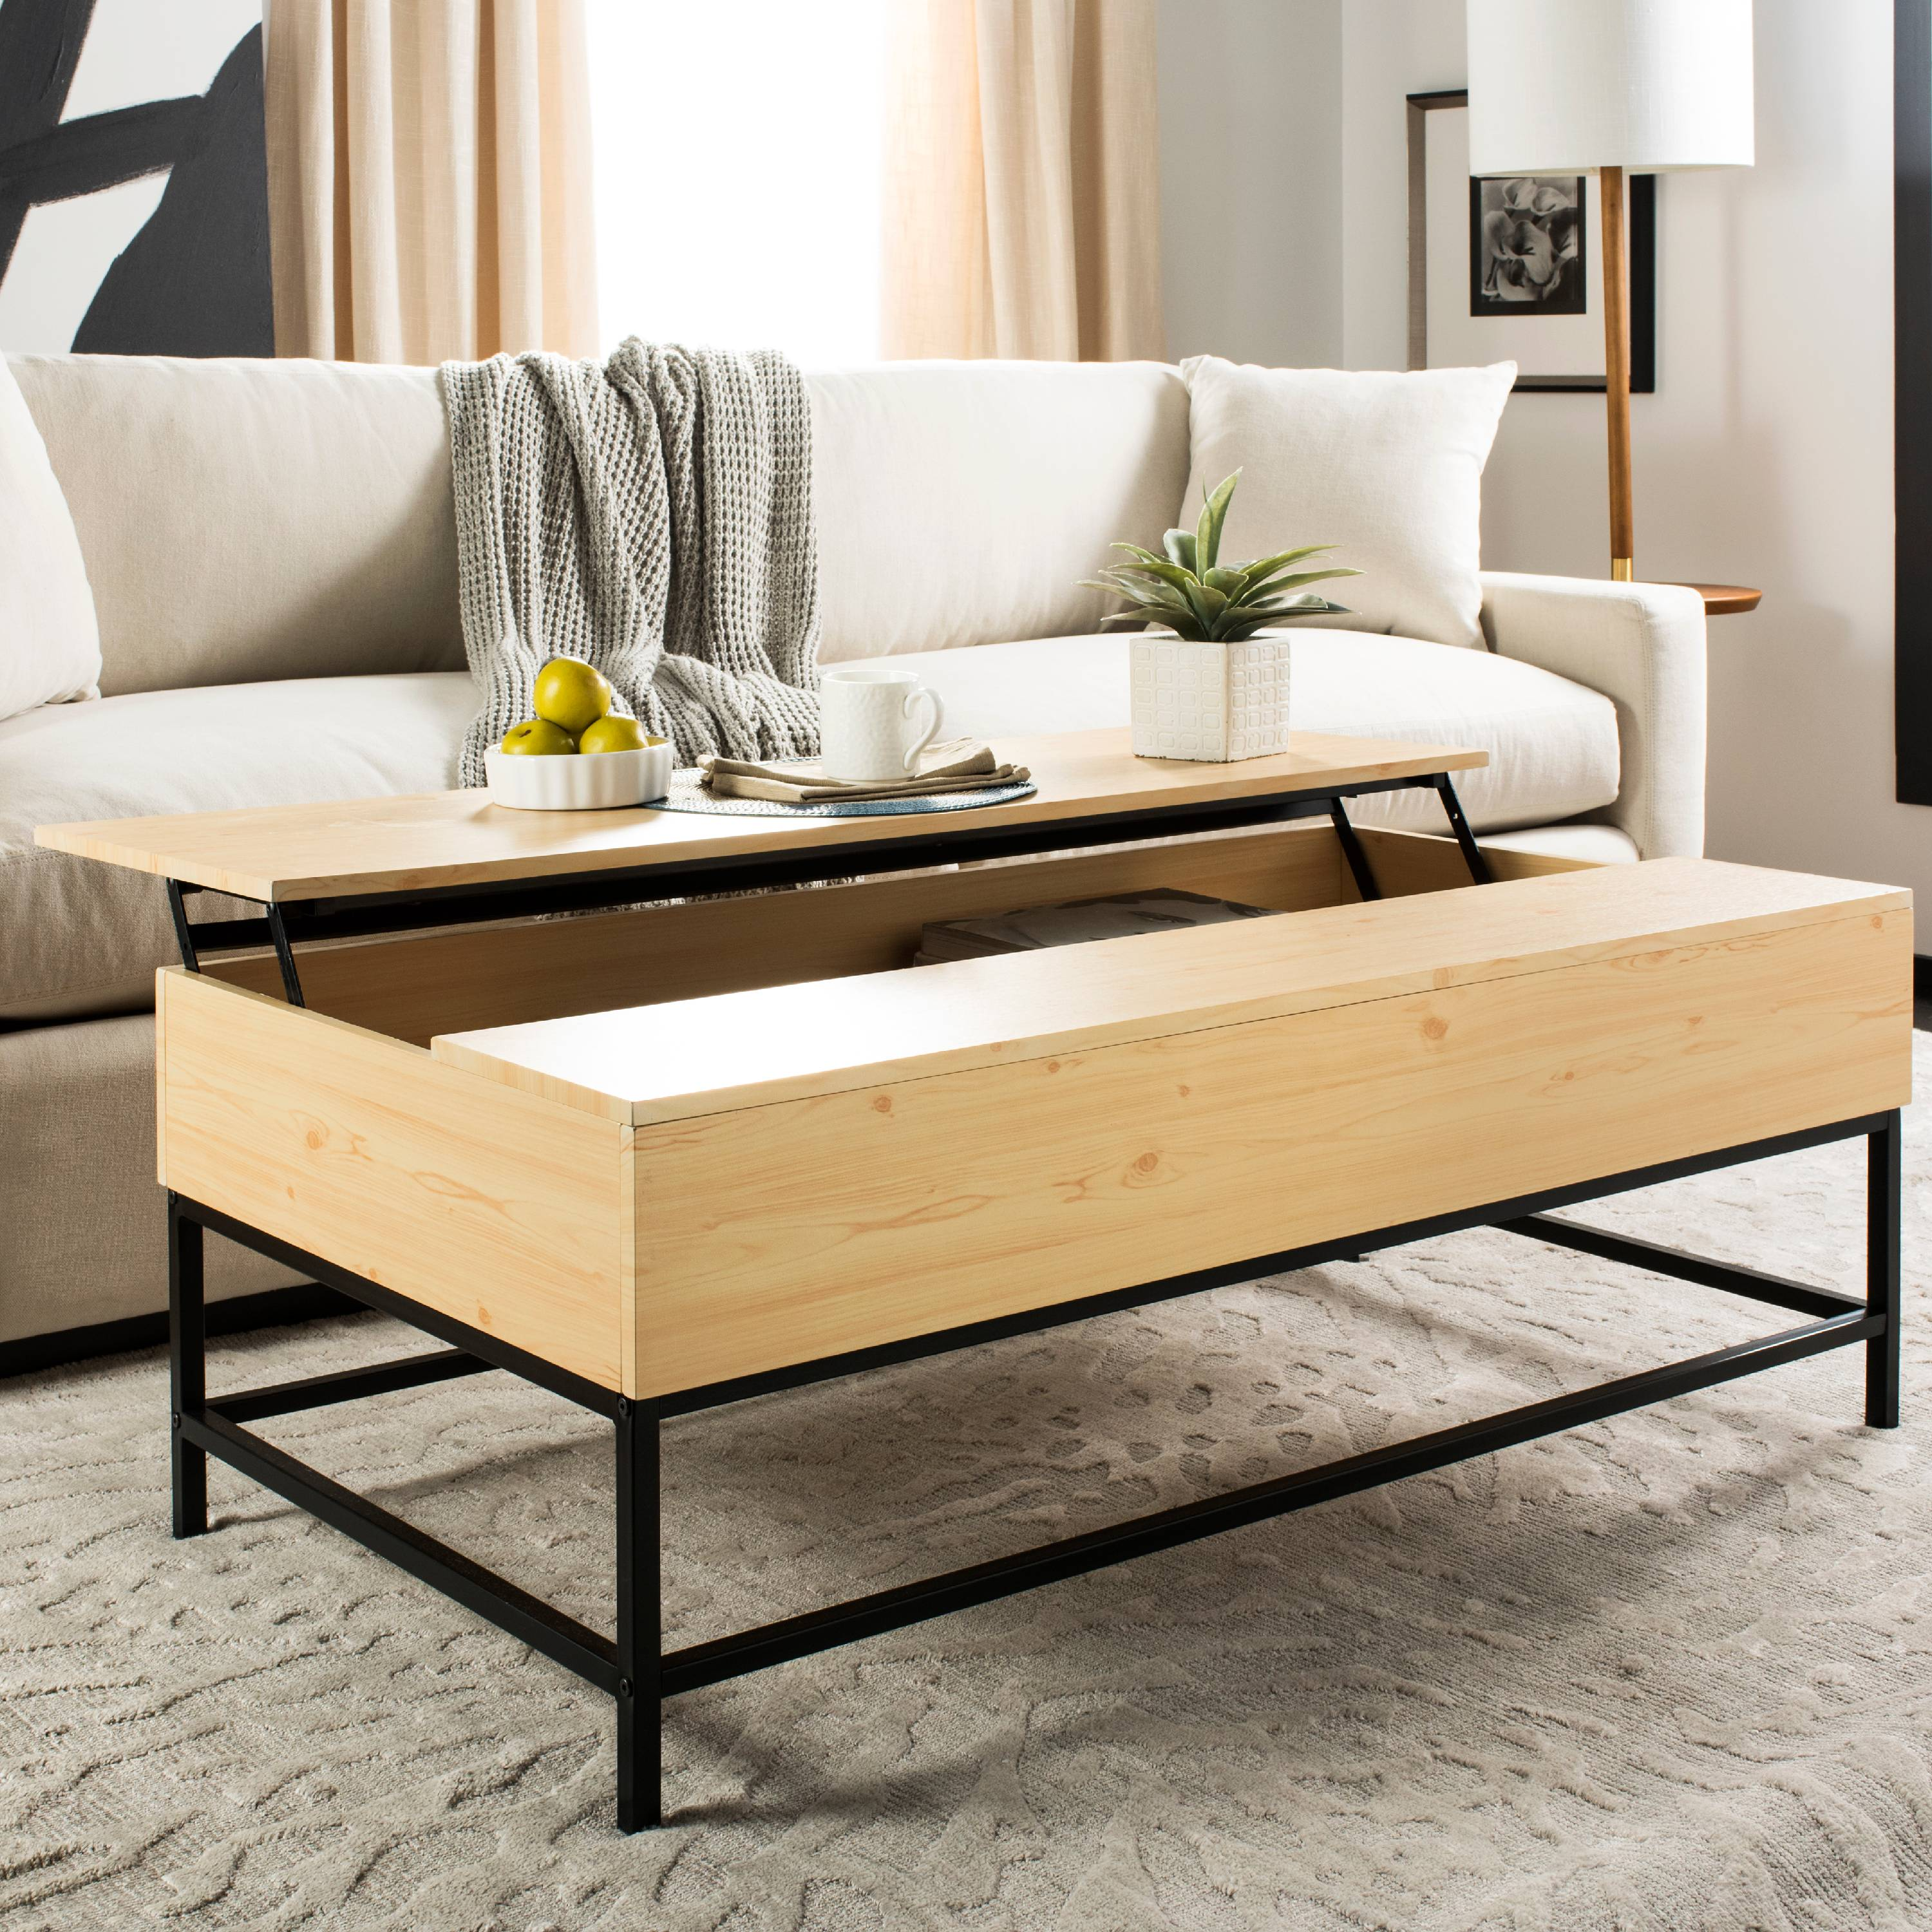 Safavieh Gina Contemporary Lift Top Coffee Table With Storage   Walmart.com